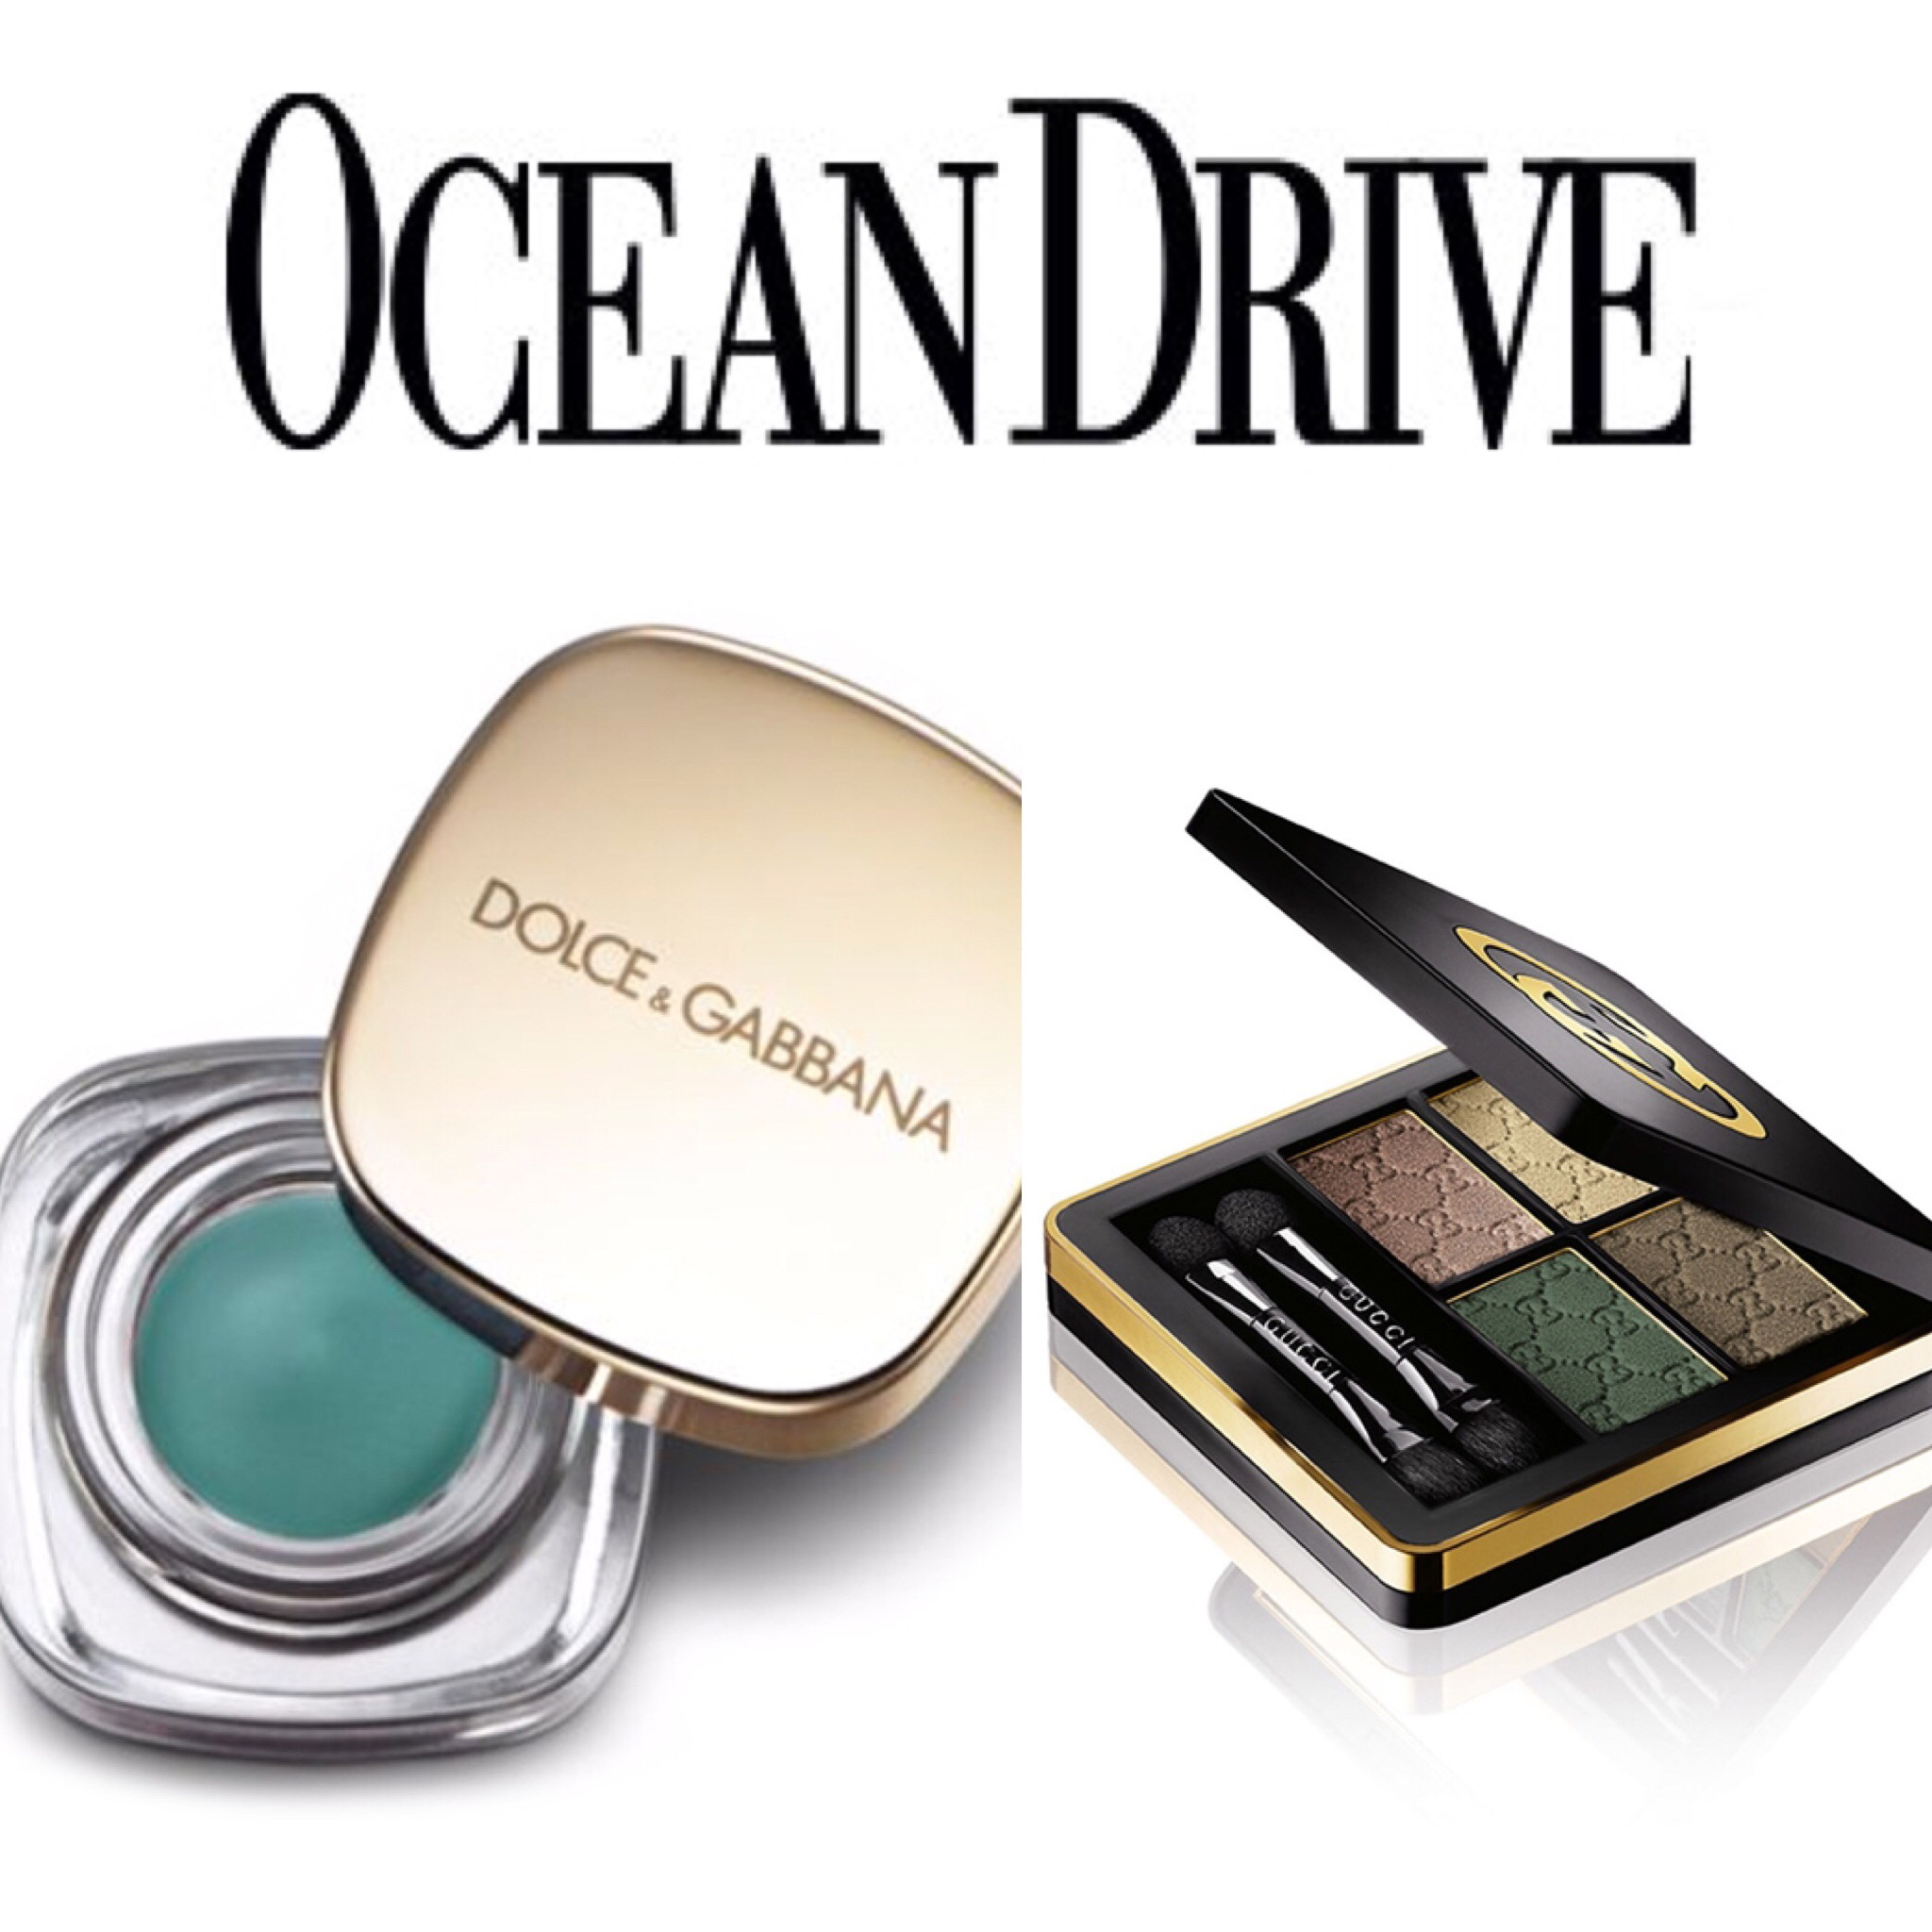 https://oceandrive.com/best-eyeliners-eyeshadows-for-every-occasion